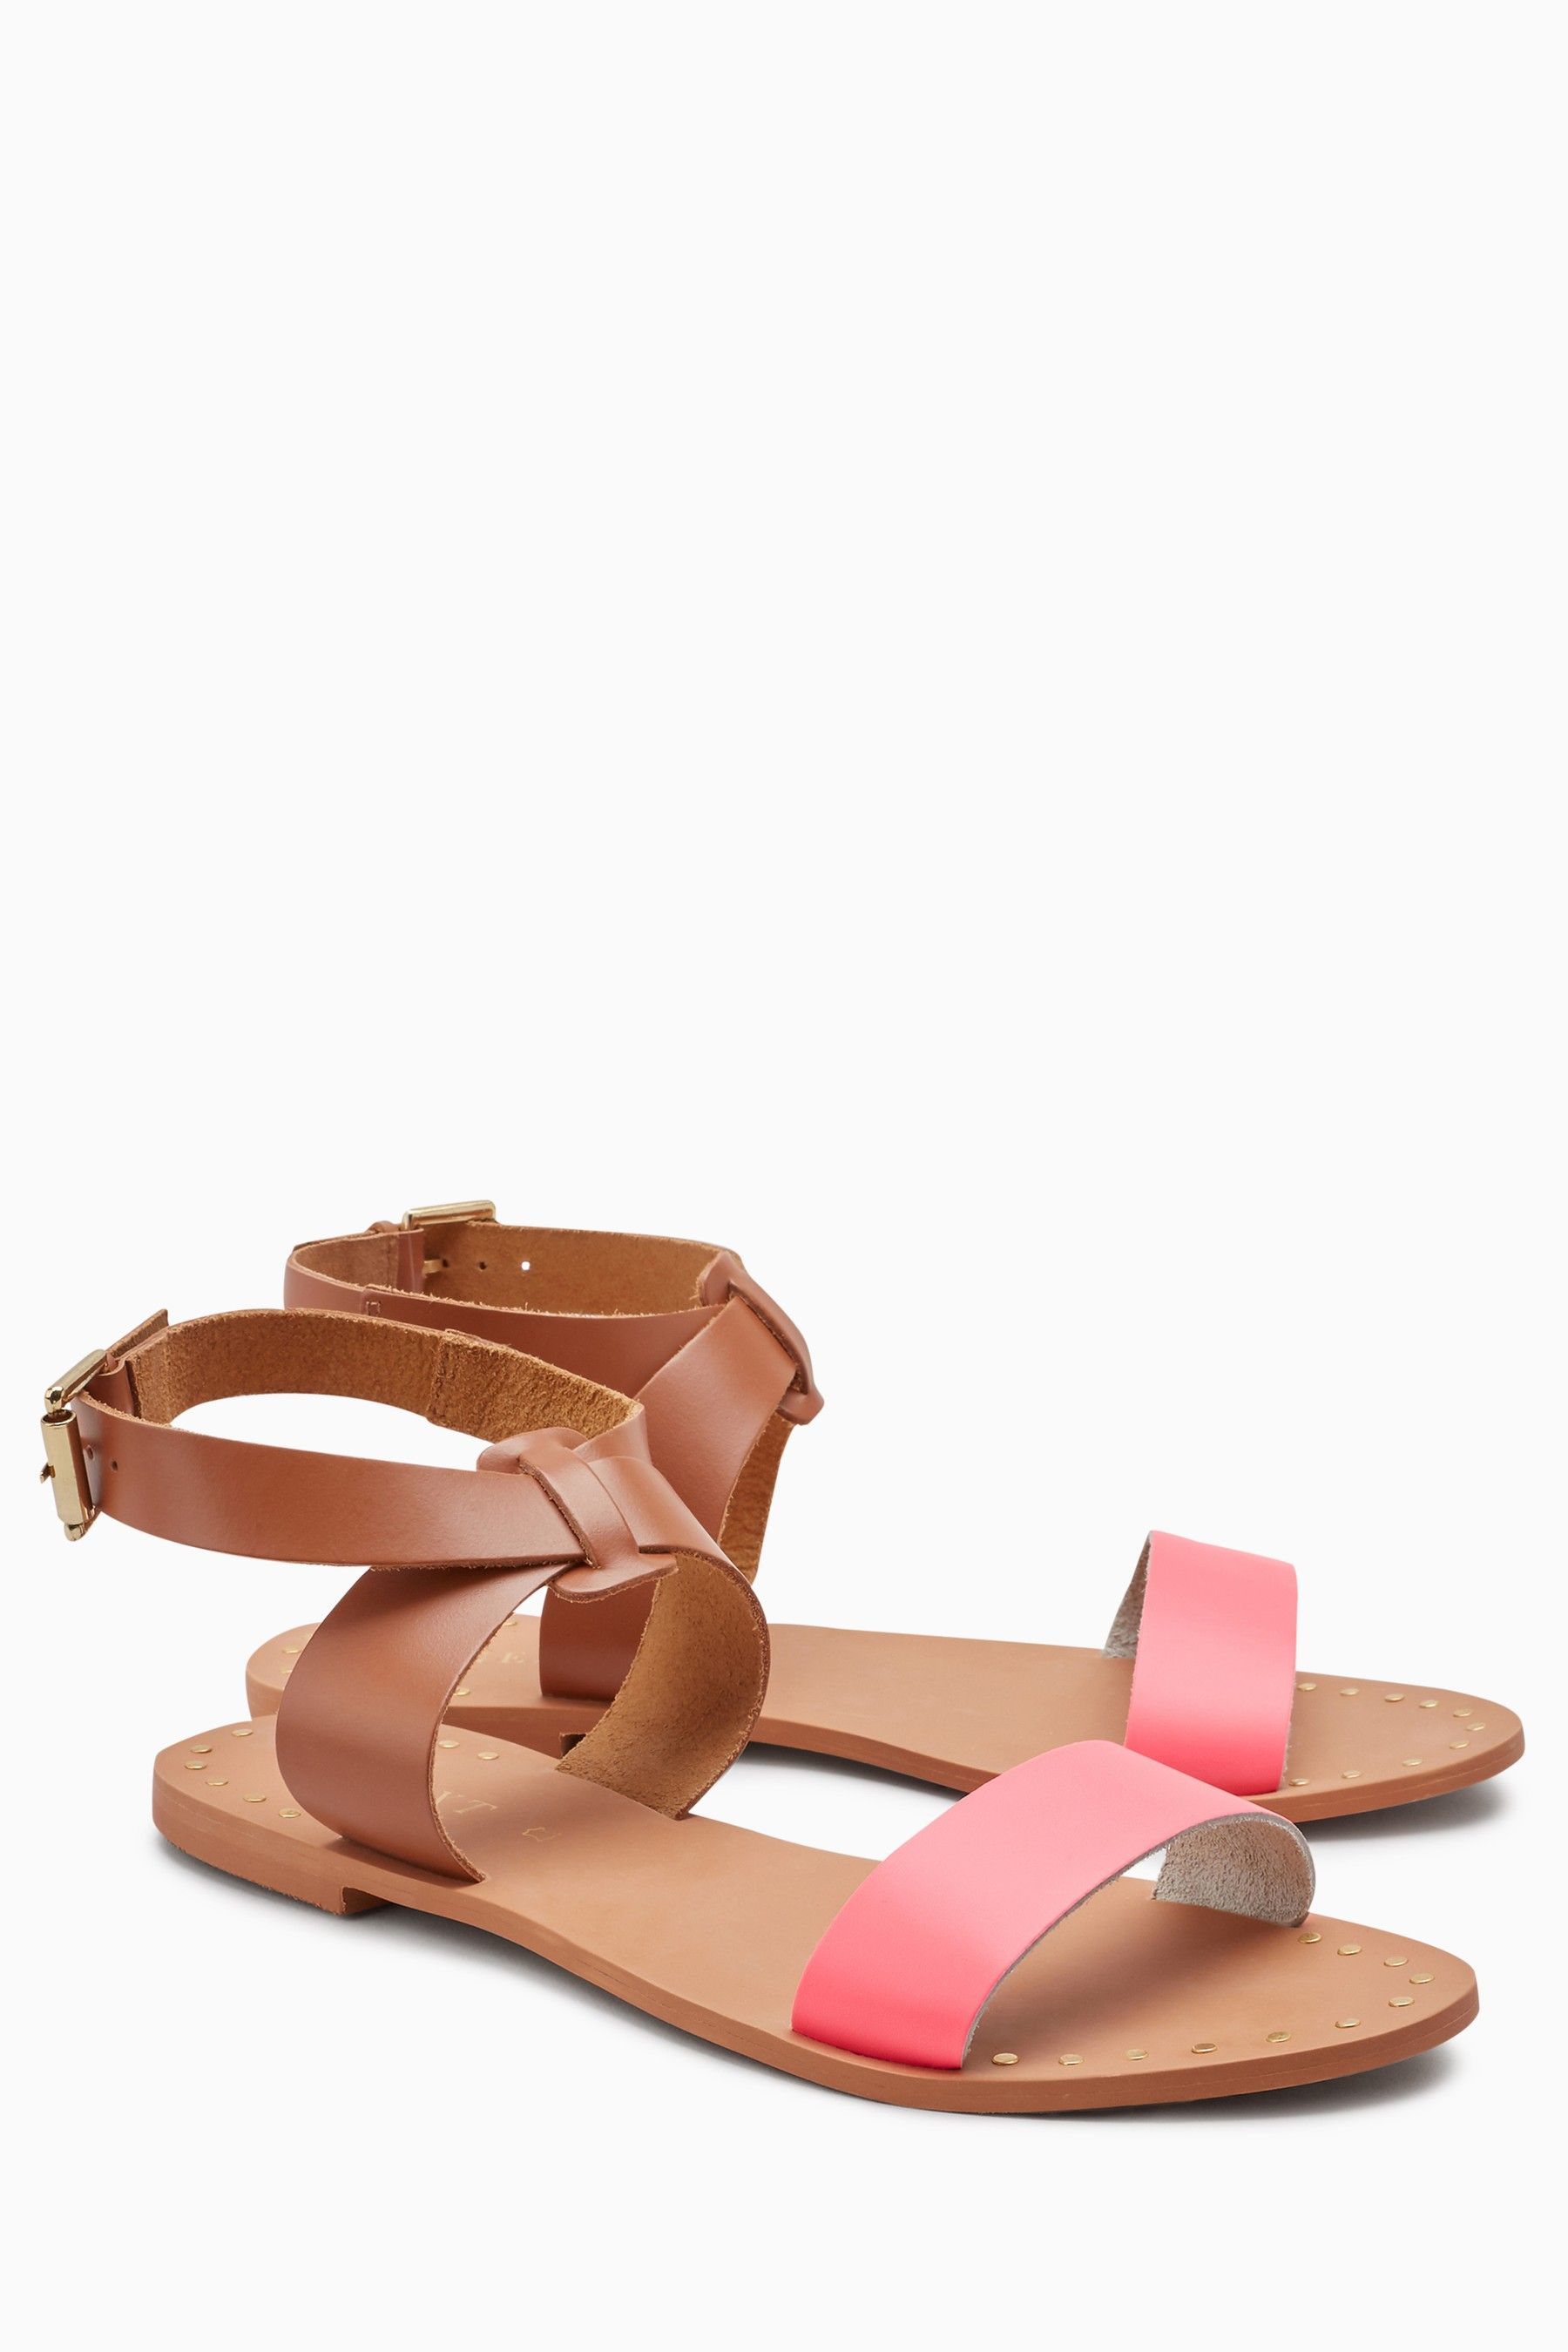 508bf2fd72 Womens Next Neon Ankle Strap Sandals - Pink | Products | Ankle Strap ...